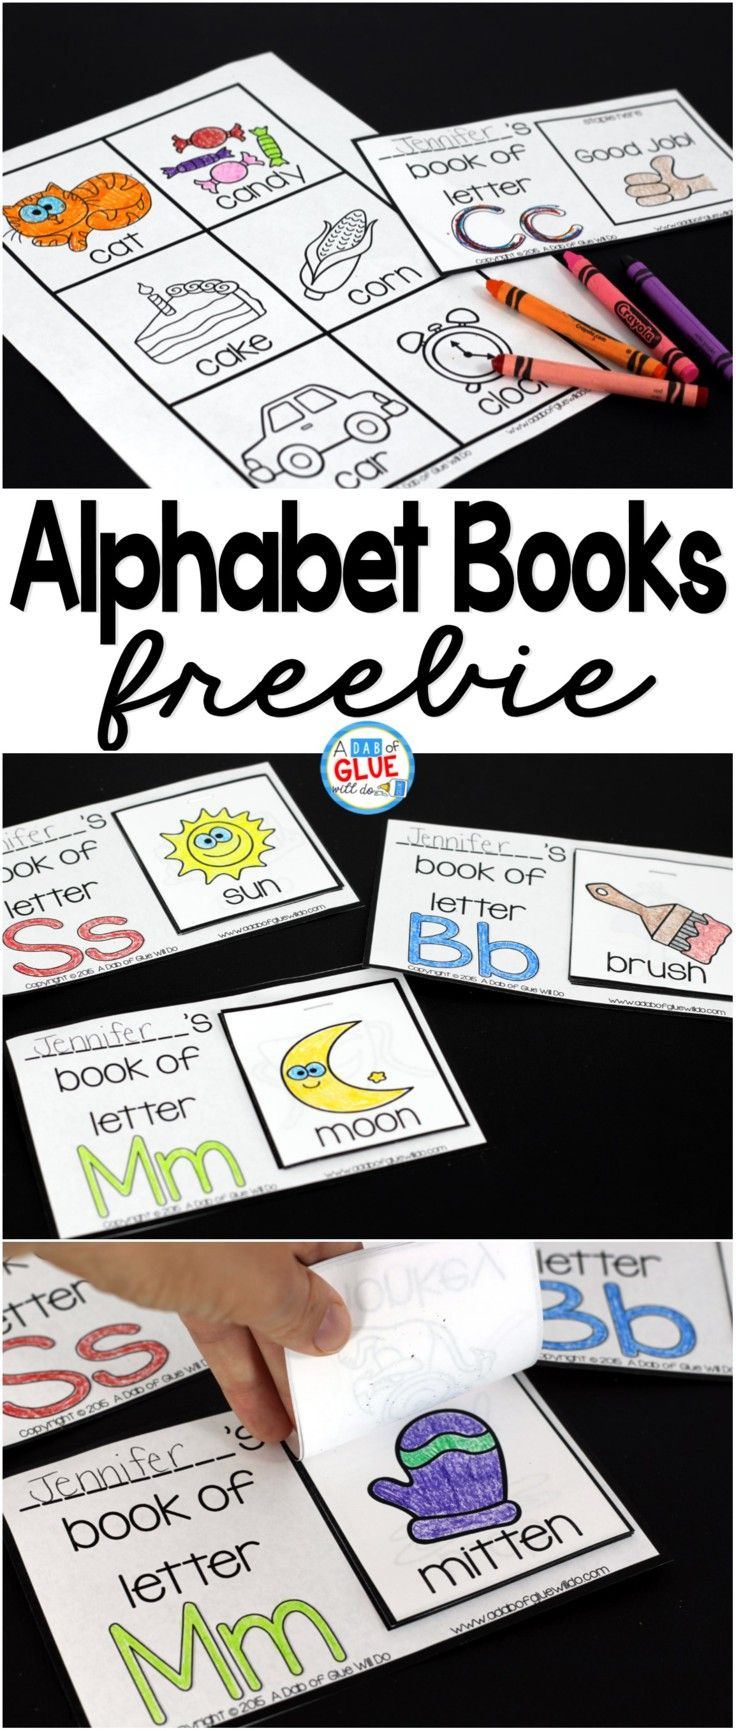 Letter clipart alphabet book bag vector black and white 17 Best ideas about Alphabet Books on Pinterest | Alphabet ... vector black and white